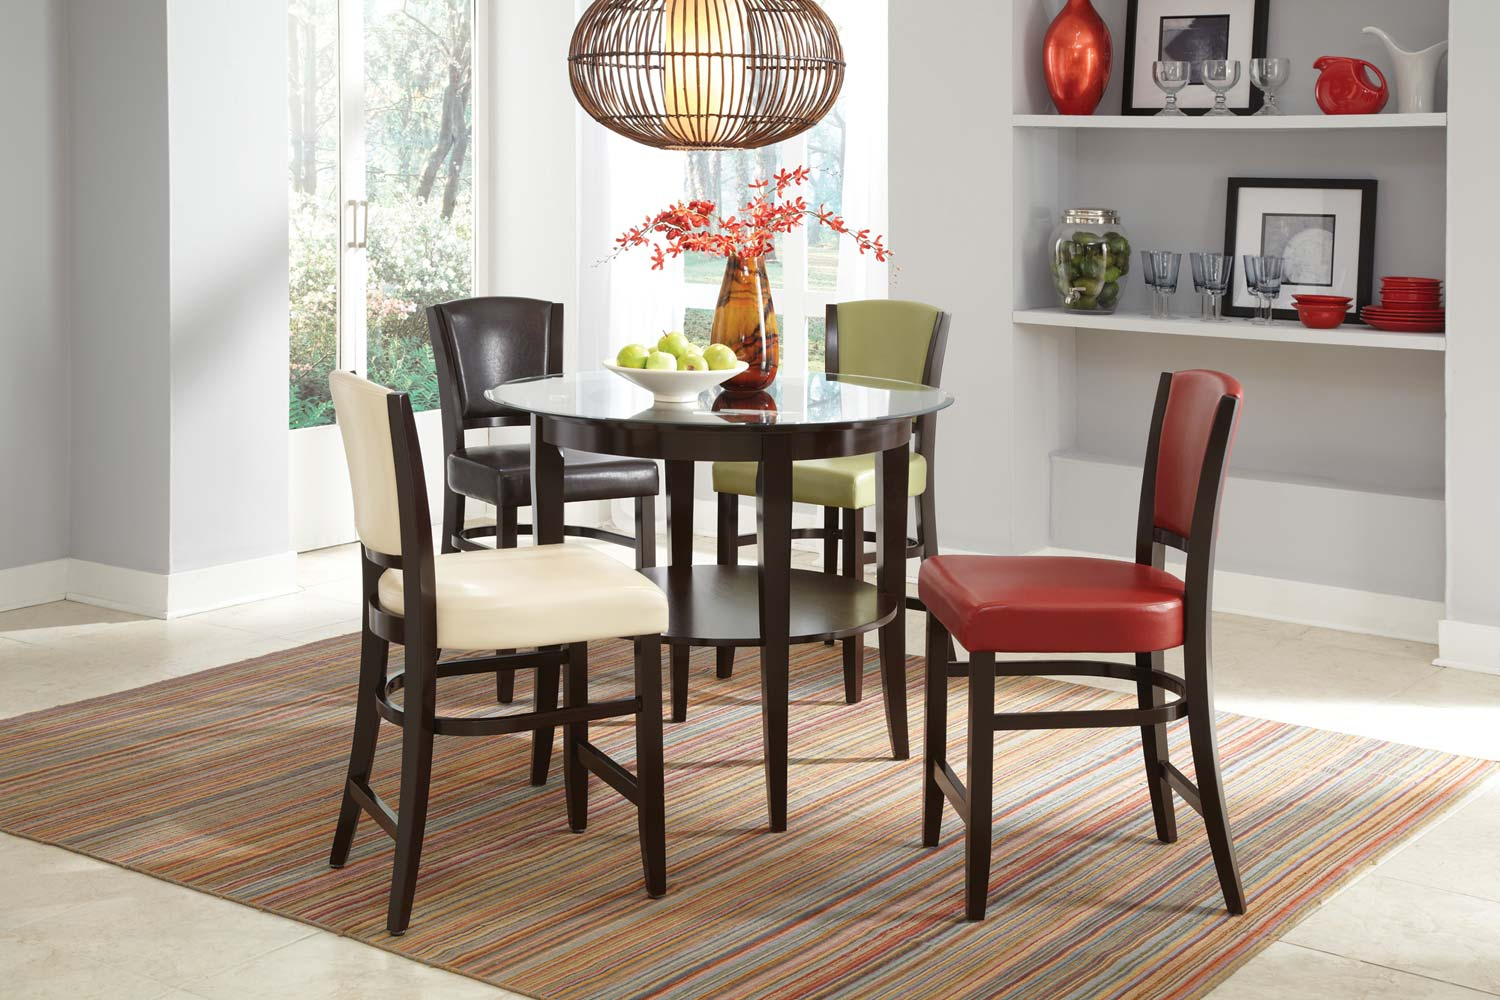 Coaster Mix Amp Match Counter Height Dining Set Espresso